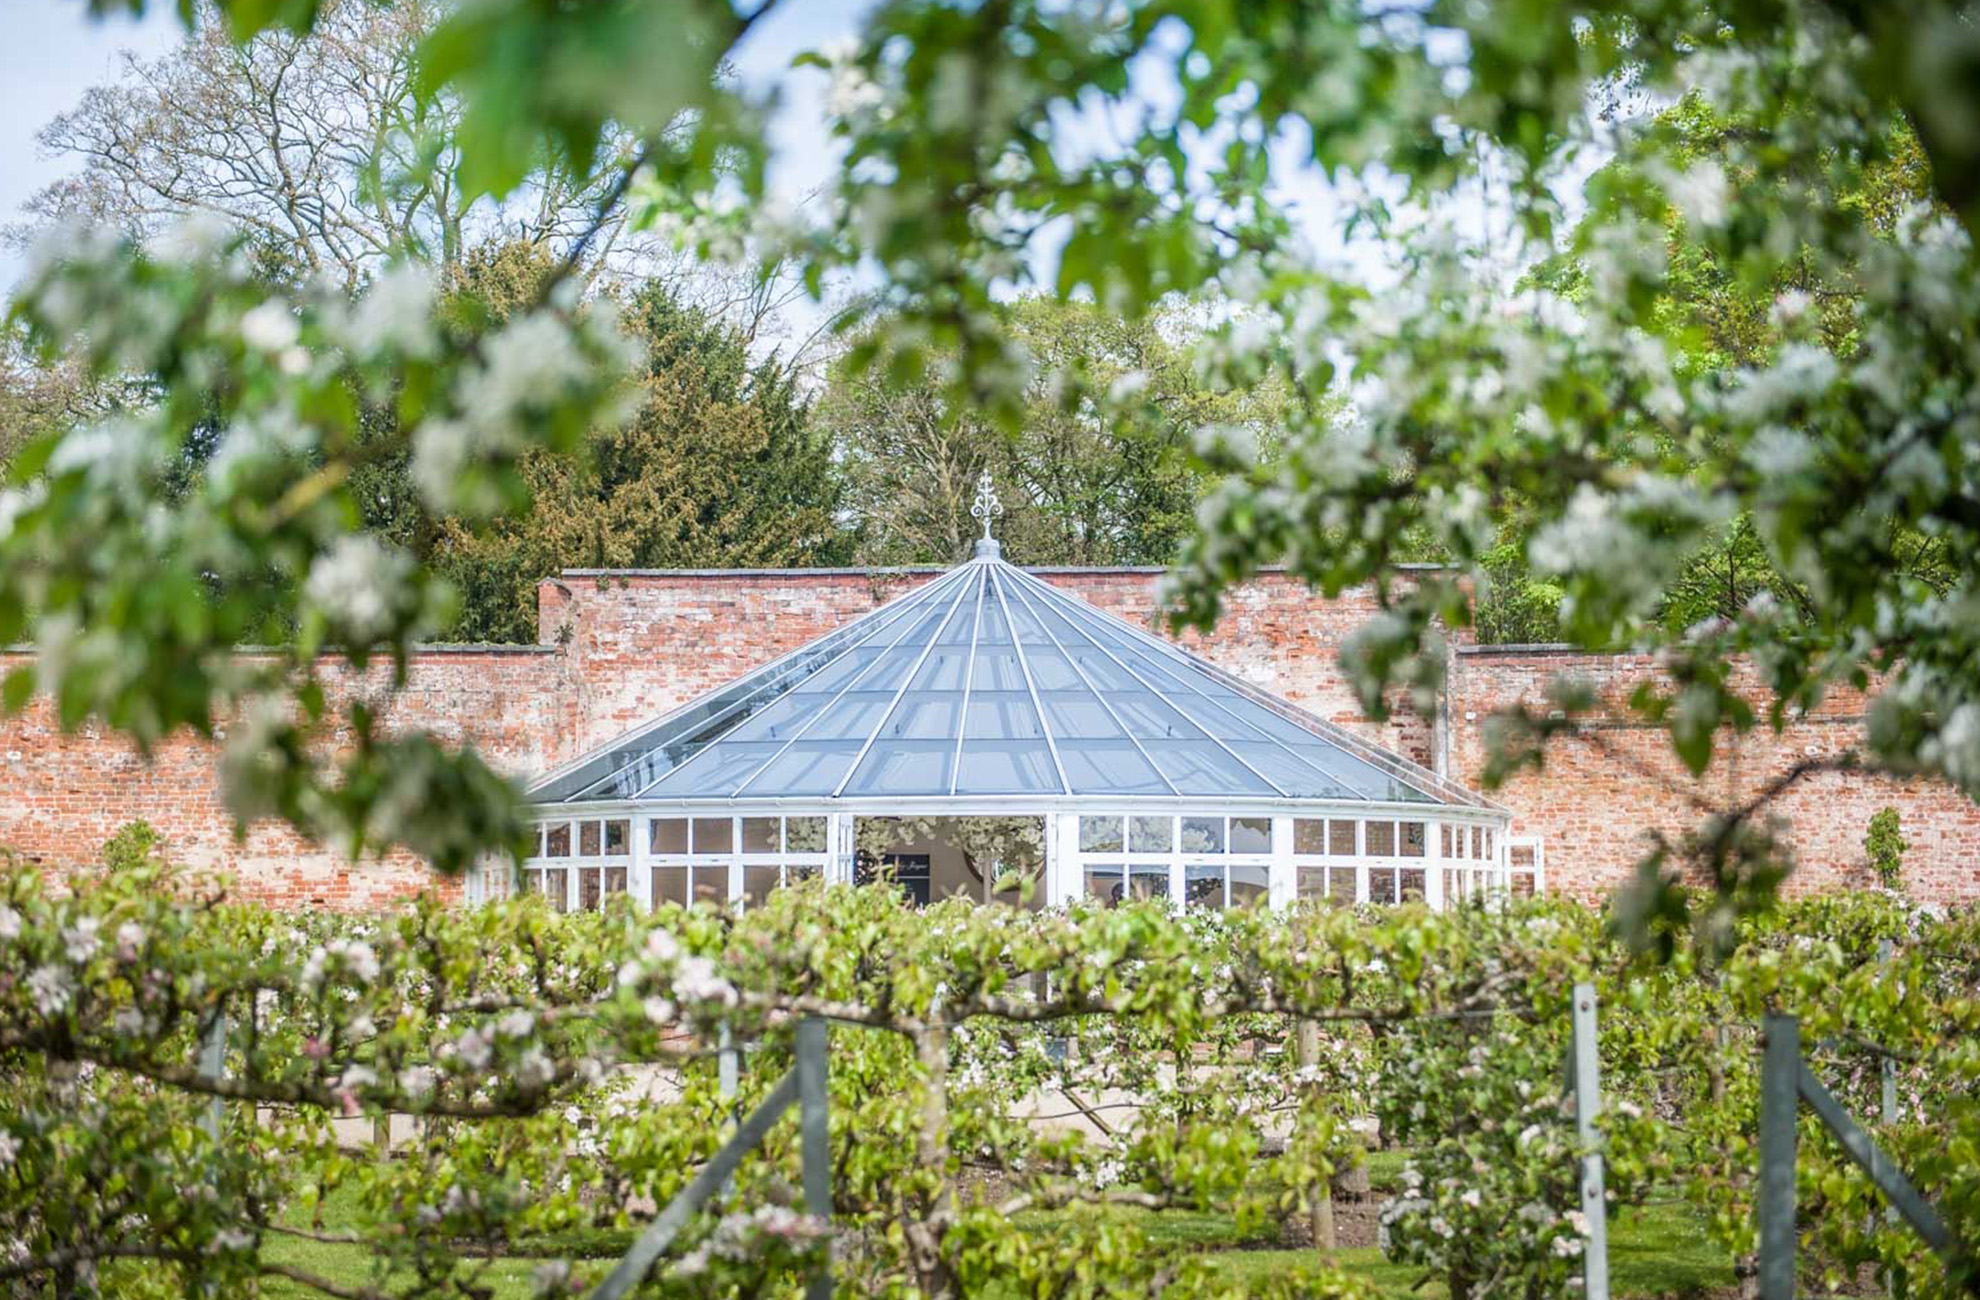 The Glasshouse at Combermere Abbey is the perfect wedding ceremony space and sits in the middle of the fruit-tree maze